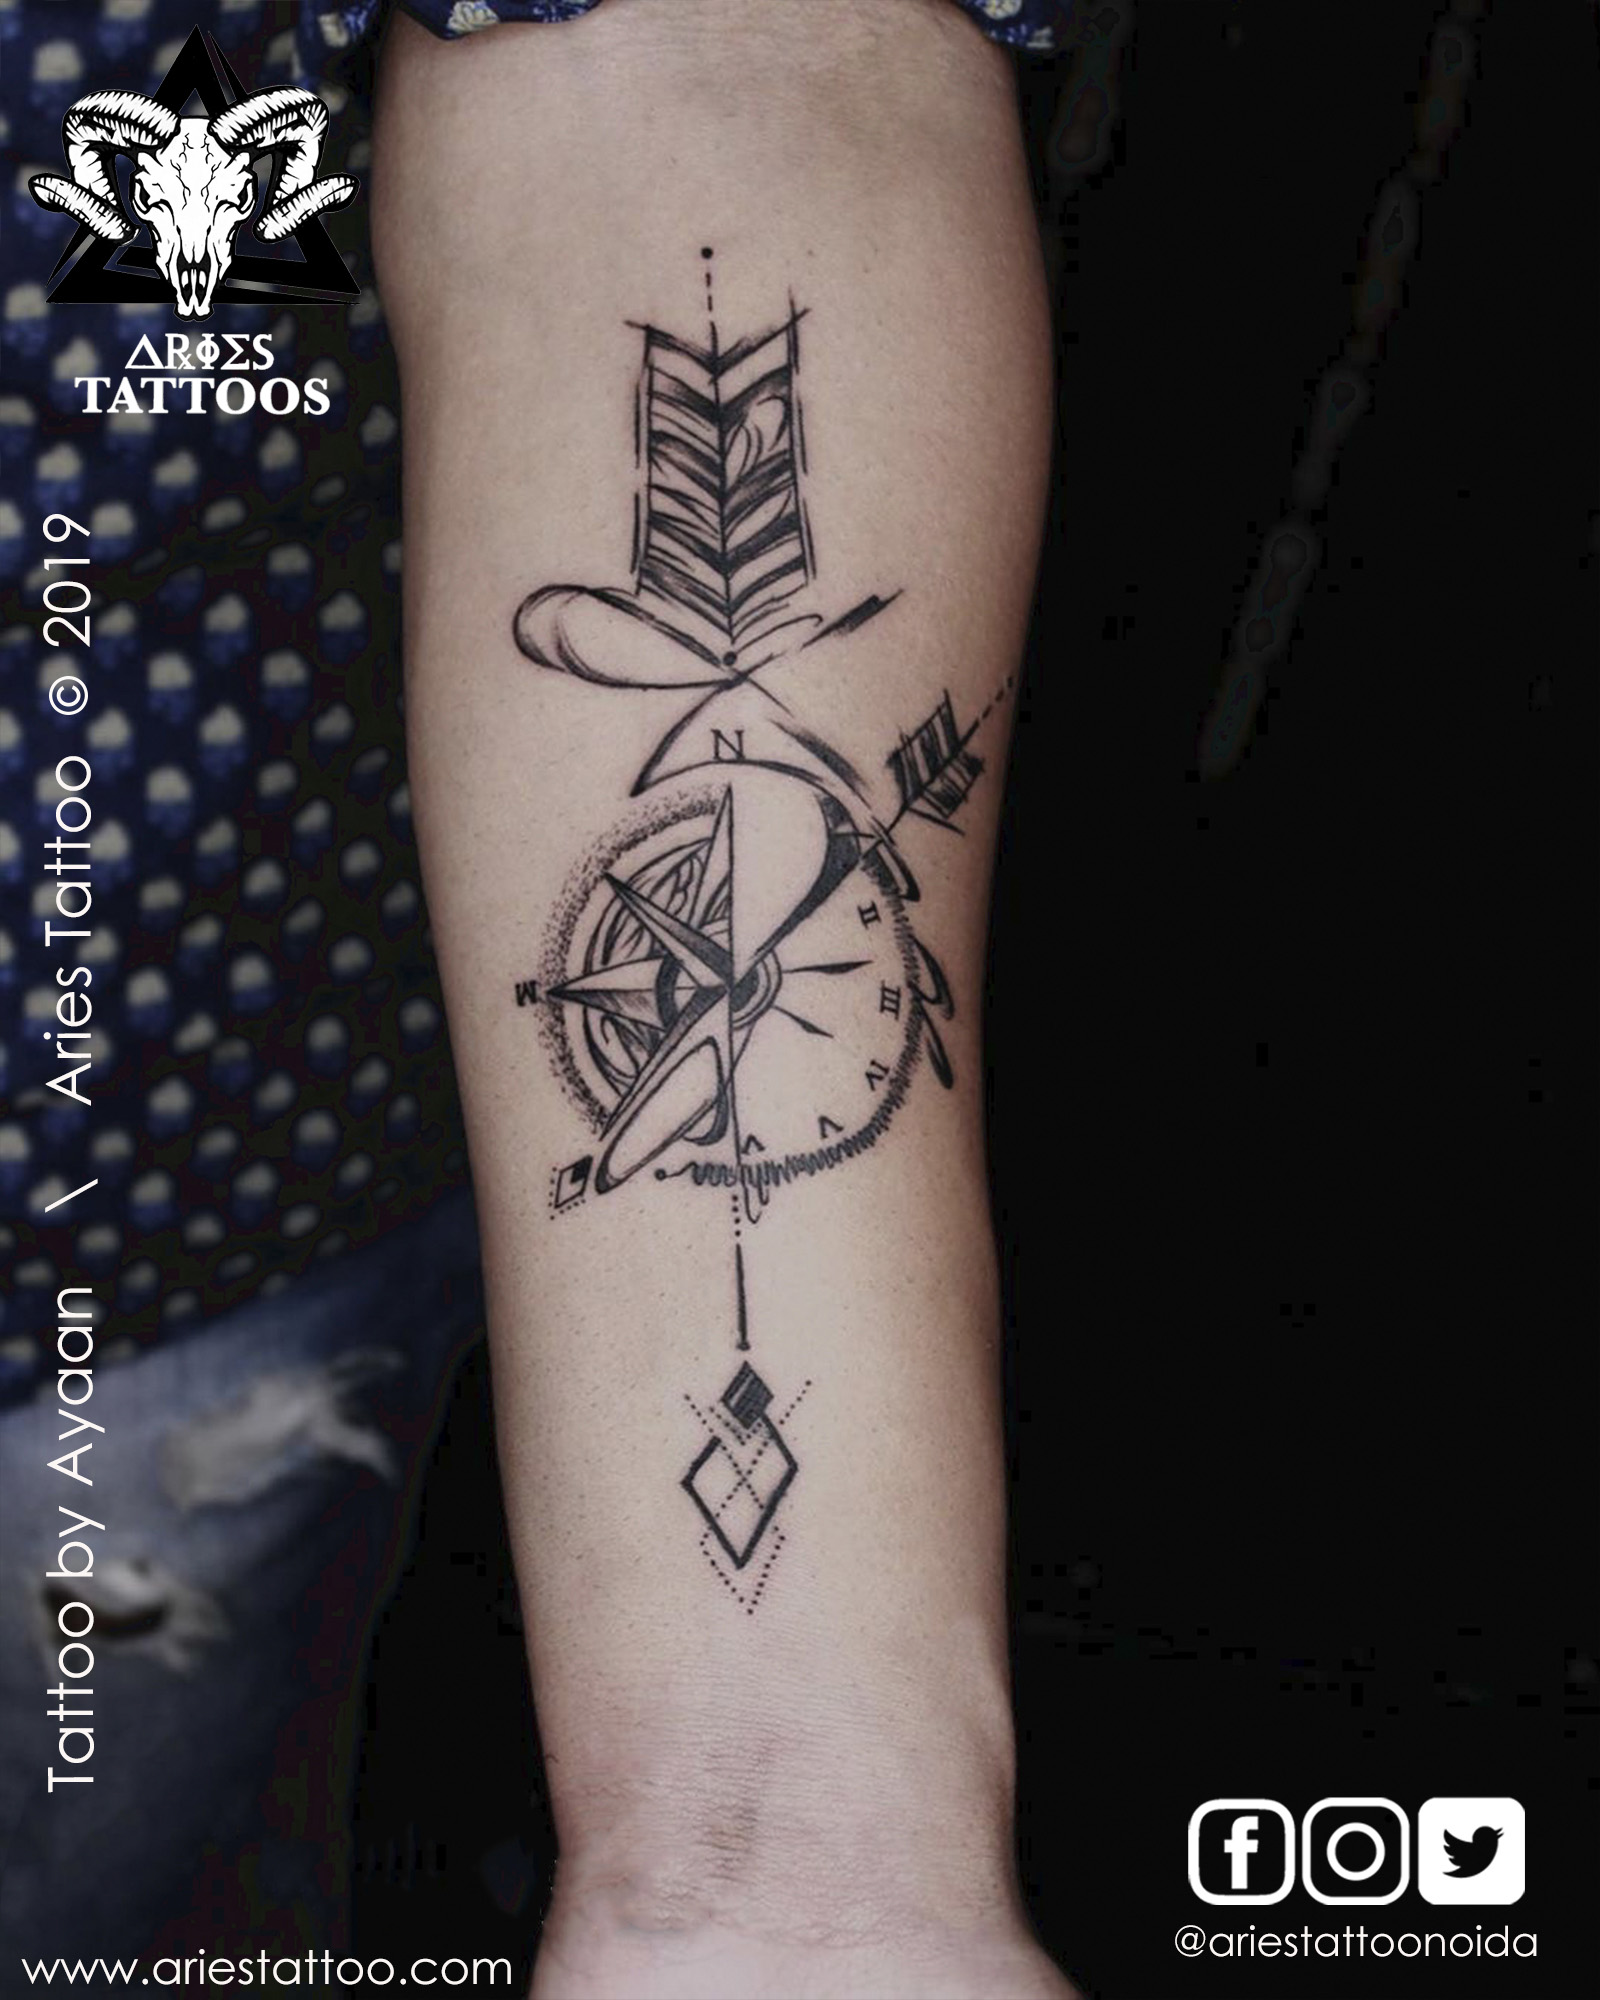 Compass with arrow tattoo |Aries Tattoo Noida | Tattoo Shop and Studio In Noida |